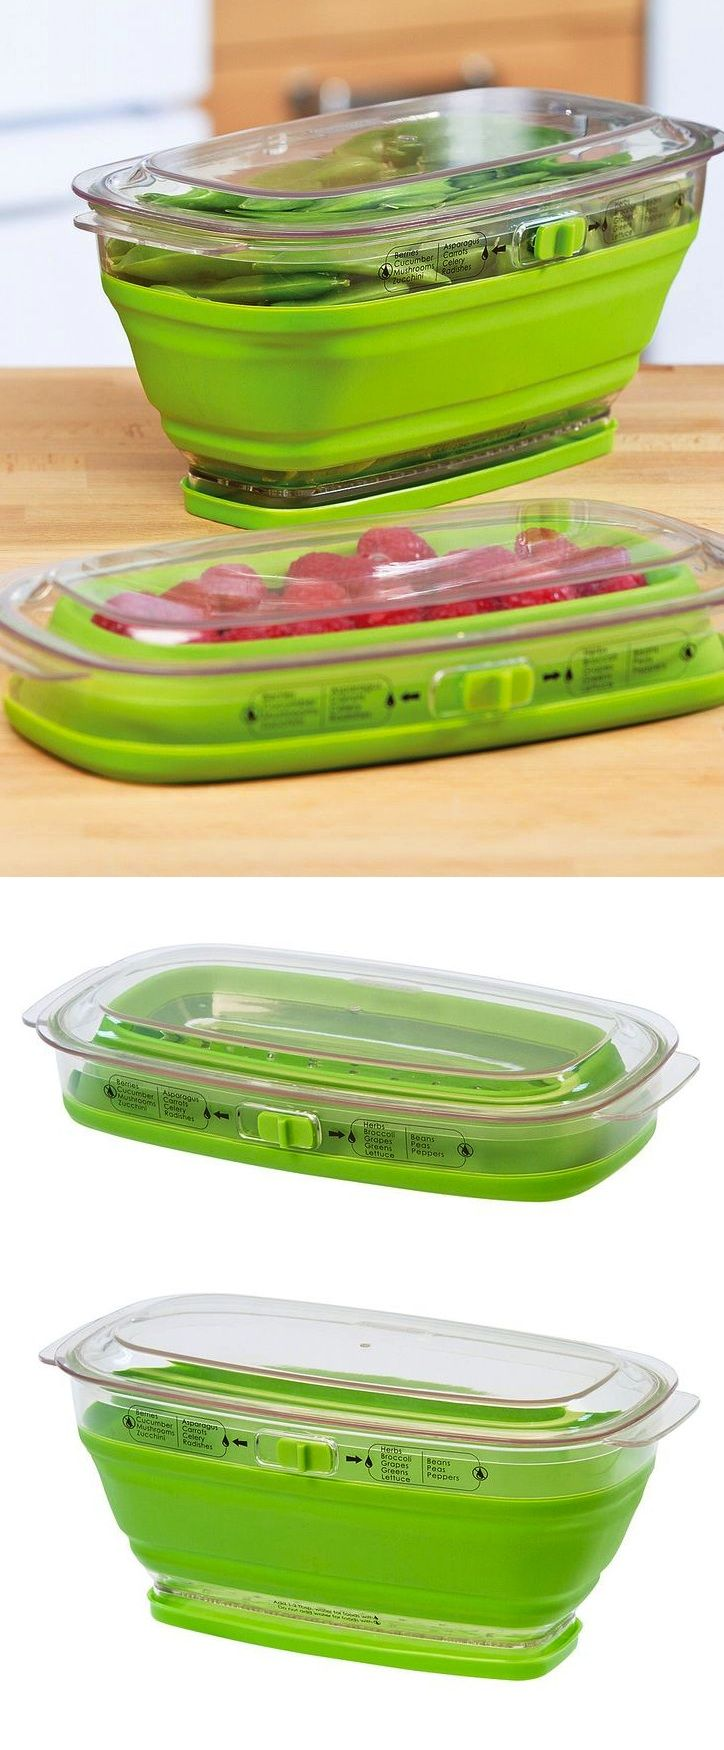 Collapsible Produce Keeper: Ingenious collapsible storage container--pop up for large quantity or collapse to store smaller portions.